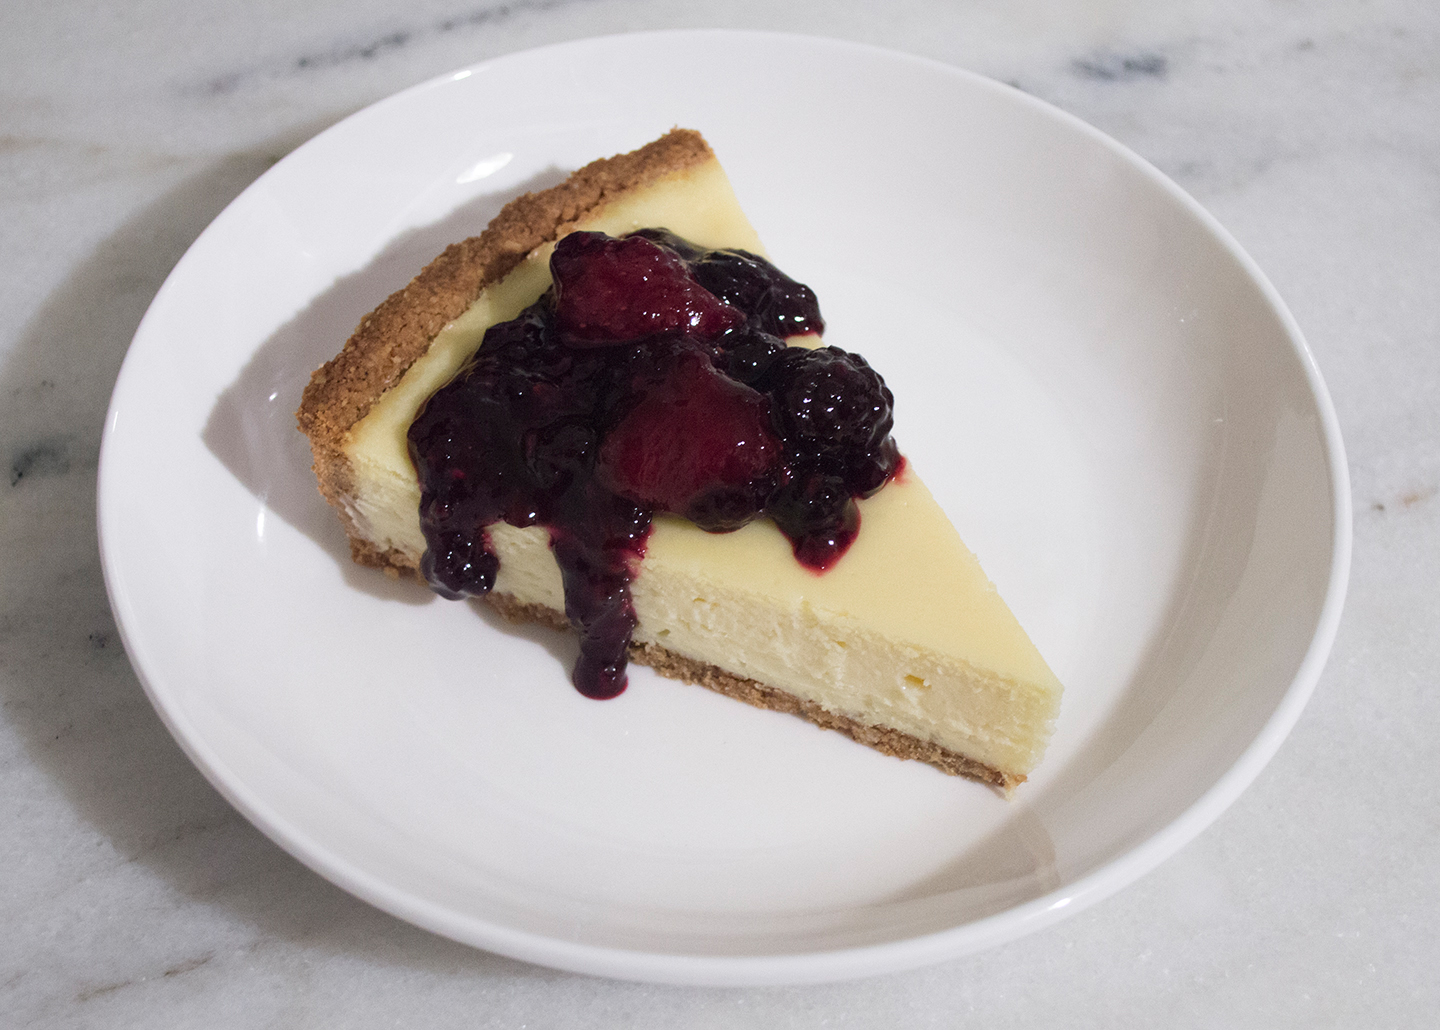 Sliced Cheesecake Tart with Berries